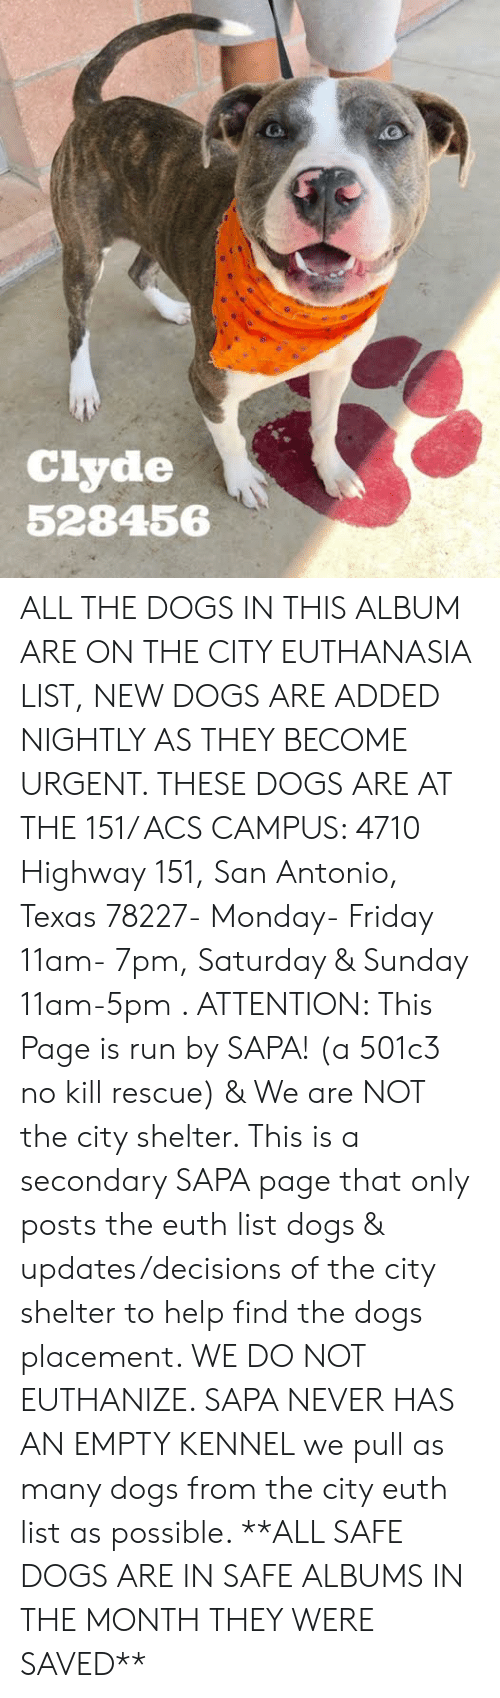 Dogs, Friday, and Memes: Ciyde  528456 ALL THE DOGS IN THIS ALBUM ARE ON THE CITY EUTHANASIA LIST, NEW DOGS ARE ADDED NIGHTLY AS THEY BECOME URGENT.  THESE DOGS ARE AT THE 151/ ACS CAMPUS: 4710 Highway 151, San Antonio, Texas 78227- Monday- Friday 11am- 7pm, Saturday & Sunday 11am-5pm  .                                                                                                                                                                                                                                                     ATTENTION: This Page is run by SAPA! (a 501c3 no kill rescue) & We are NOT the city shelter. This is a secondary SAPA page that only posts the euth list dogs & updates/decisions of the city shelter to help find the dogs placement. WE DO NOT EUTHANIZE.  SAPA NEVER HAS AN EMPTY KENNEL we pull as many dogs from the city euth list as possible.      **ALL SAFE DOGS ARE IN SAFE ALBUMS IN THE MONTH THEY WERE SAVED**